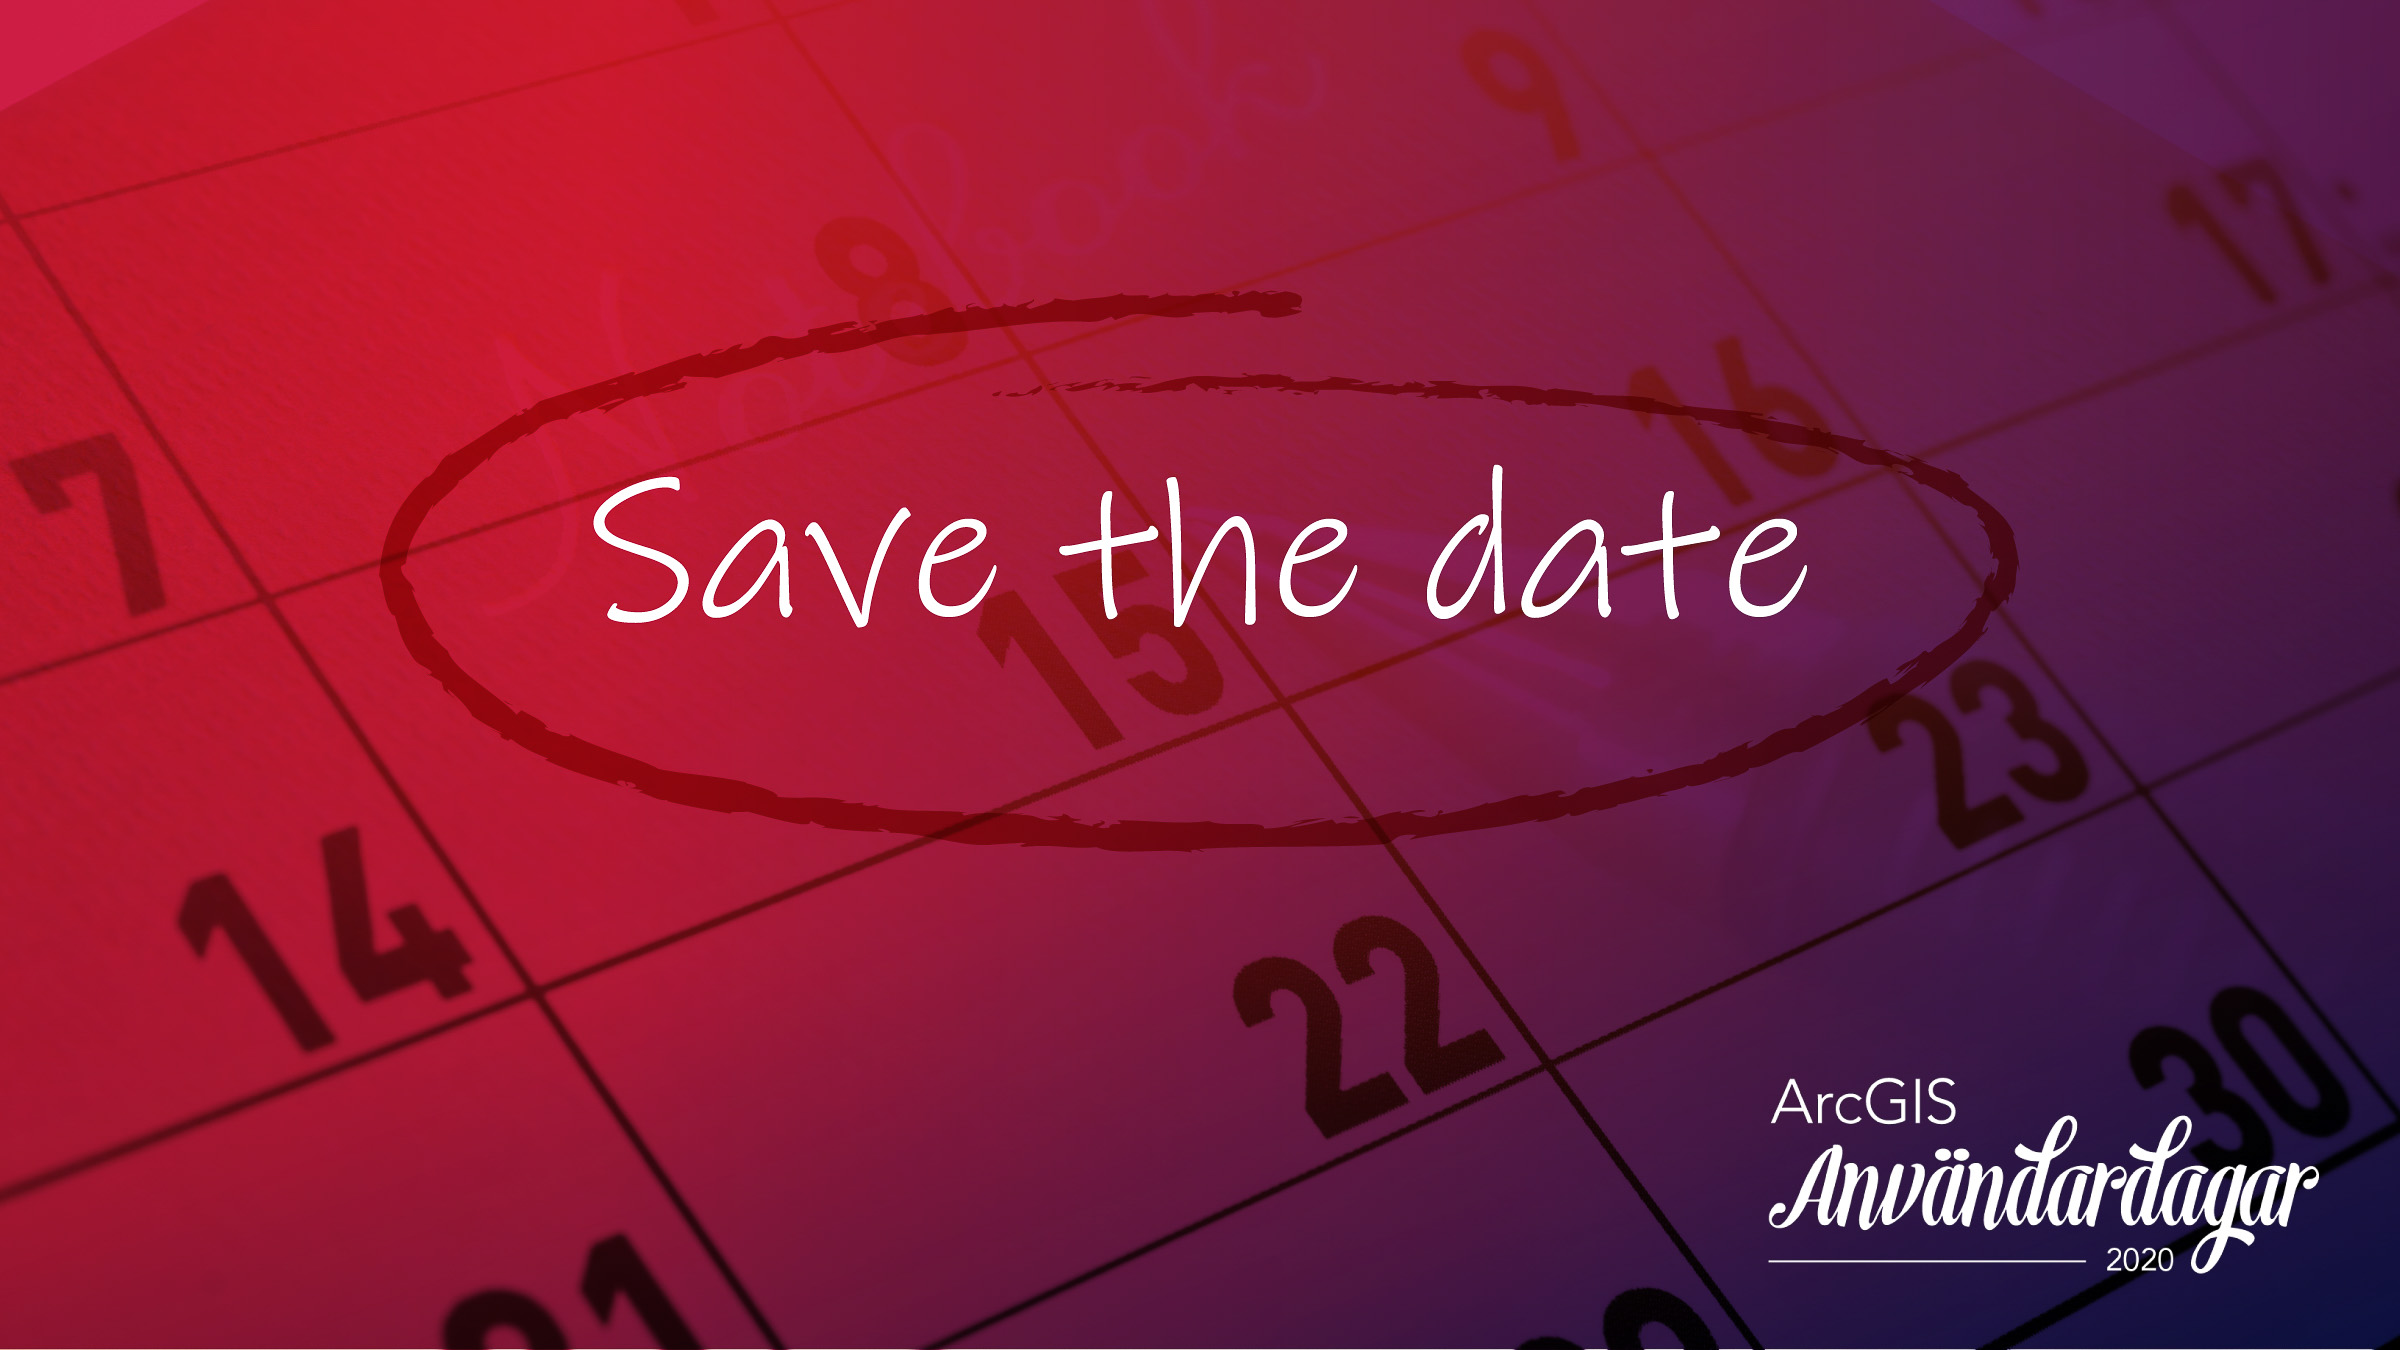 ArcGIS Användardagar 2020 - save the date